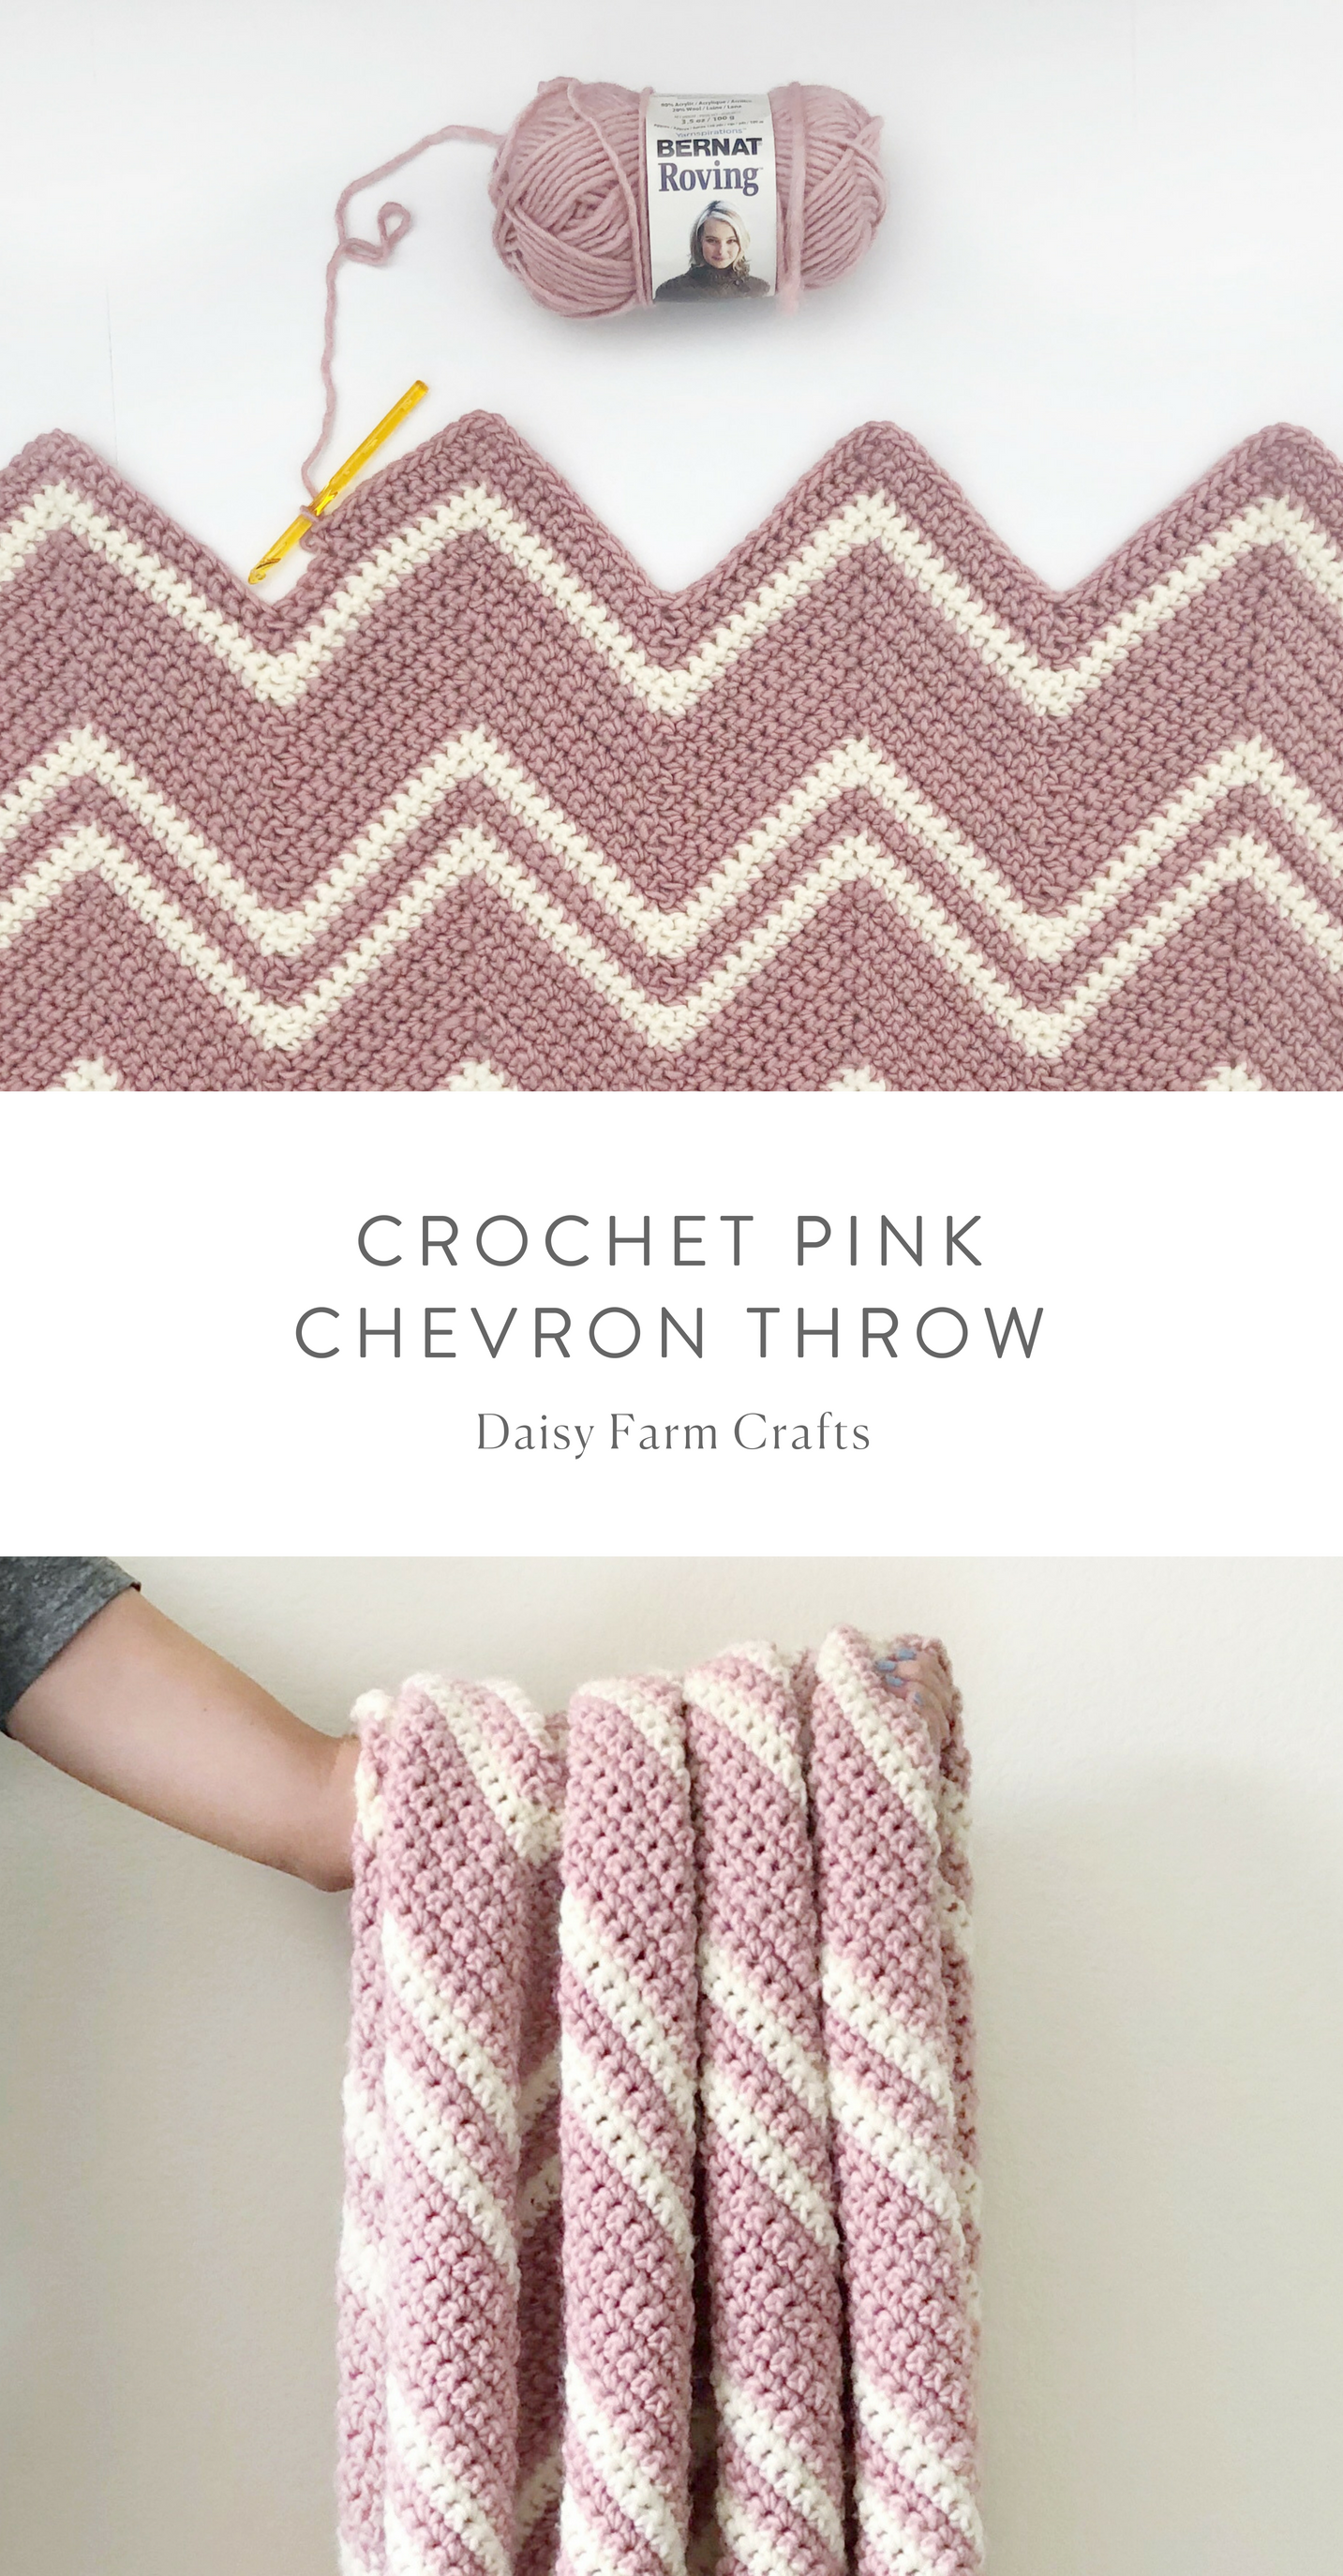 Free Pattern - Crochet Pink Chevron Throw #crochet | Crochet ...